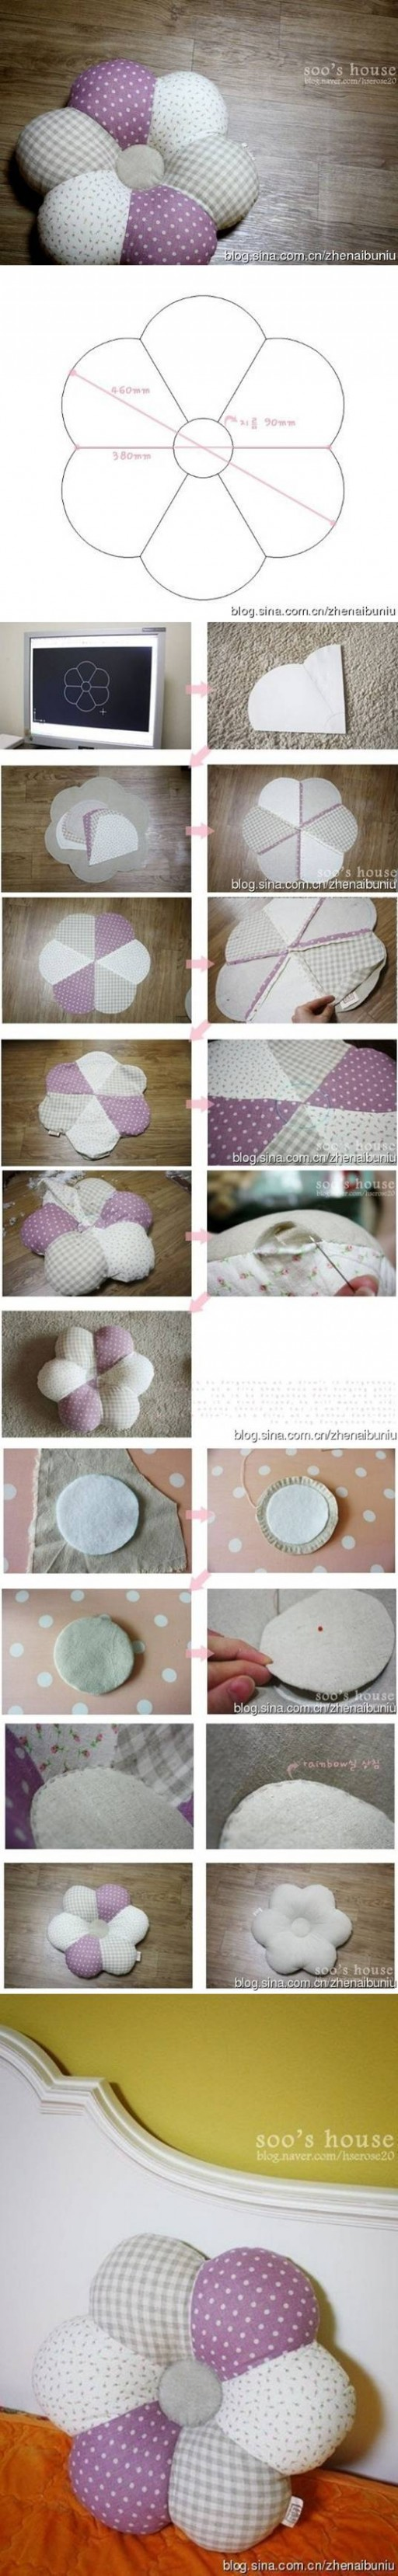 How to sew Flower down Pillows step by step DIY tutorial instructions